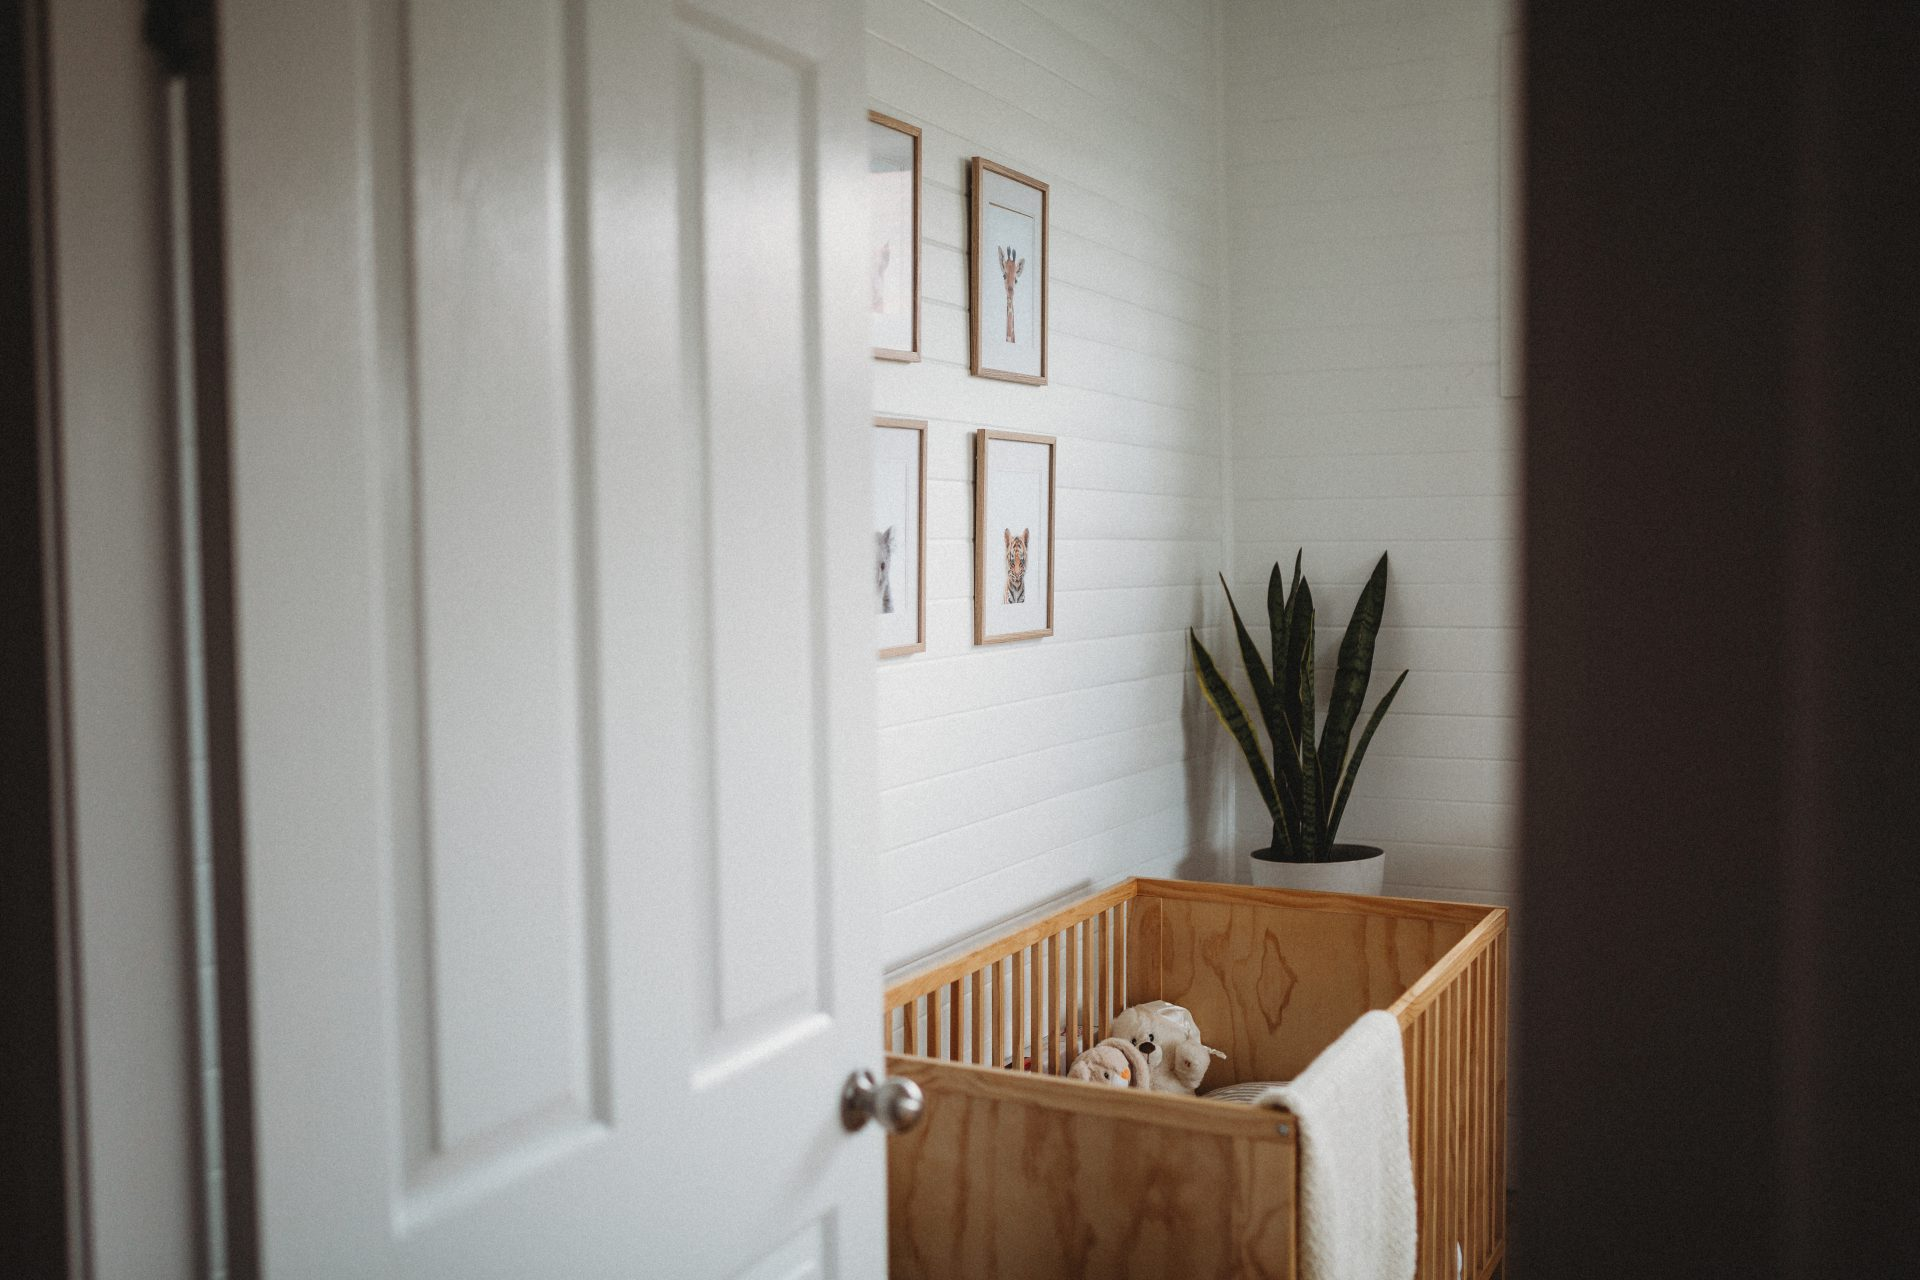 At the doorway looking into a nursery, with a timer cot and animal artwork on the walls above it. A tall plant in the corner